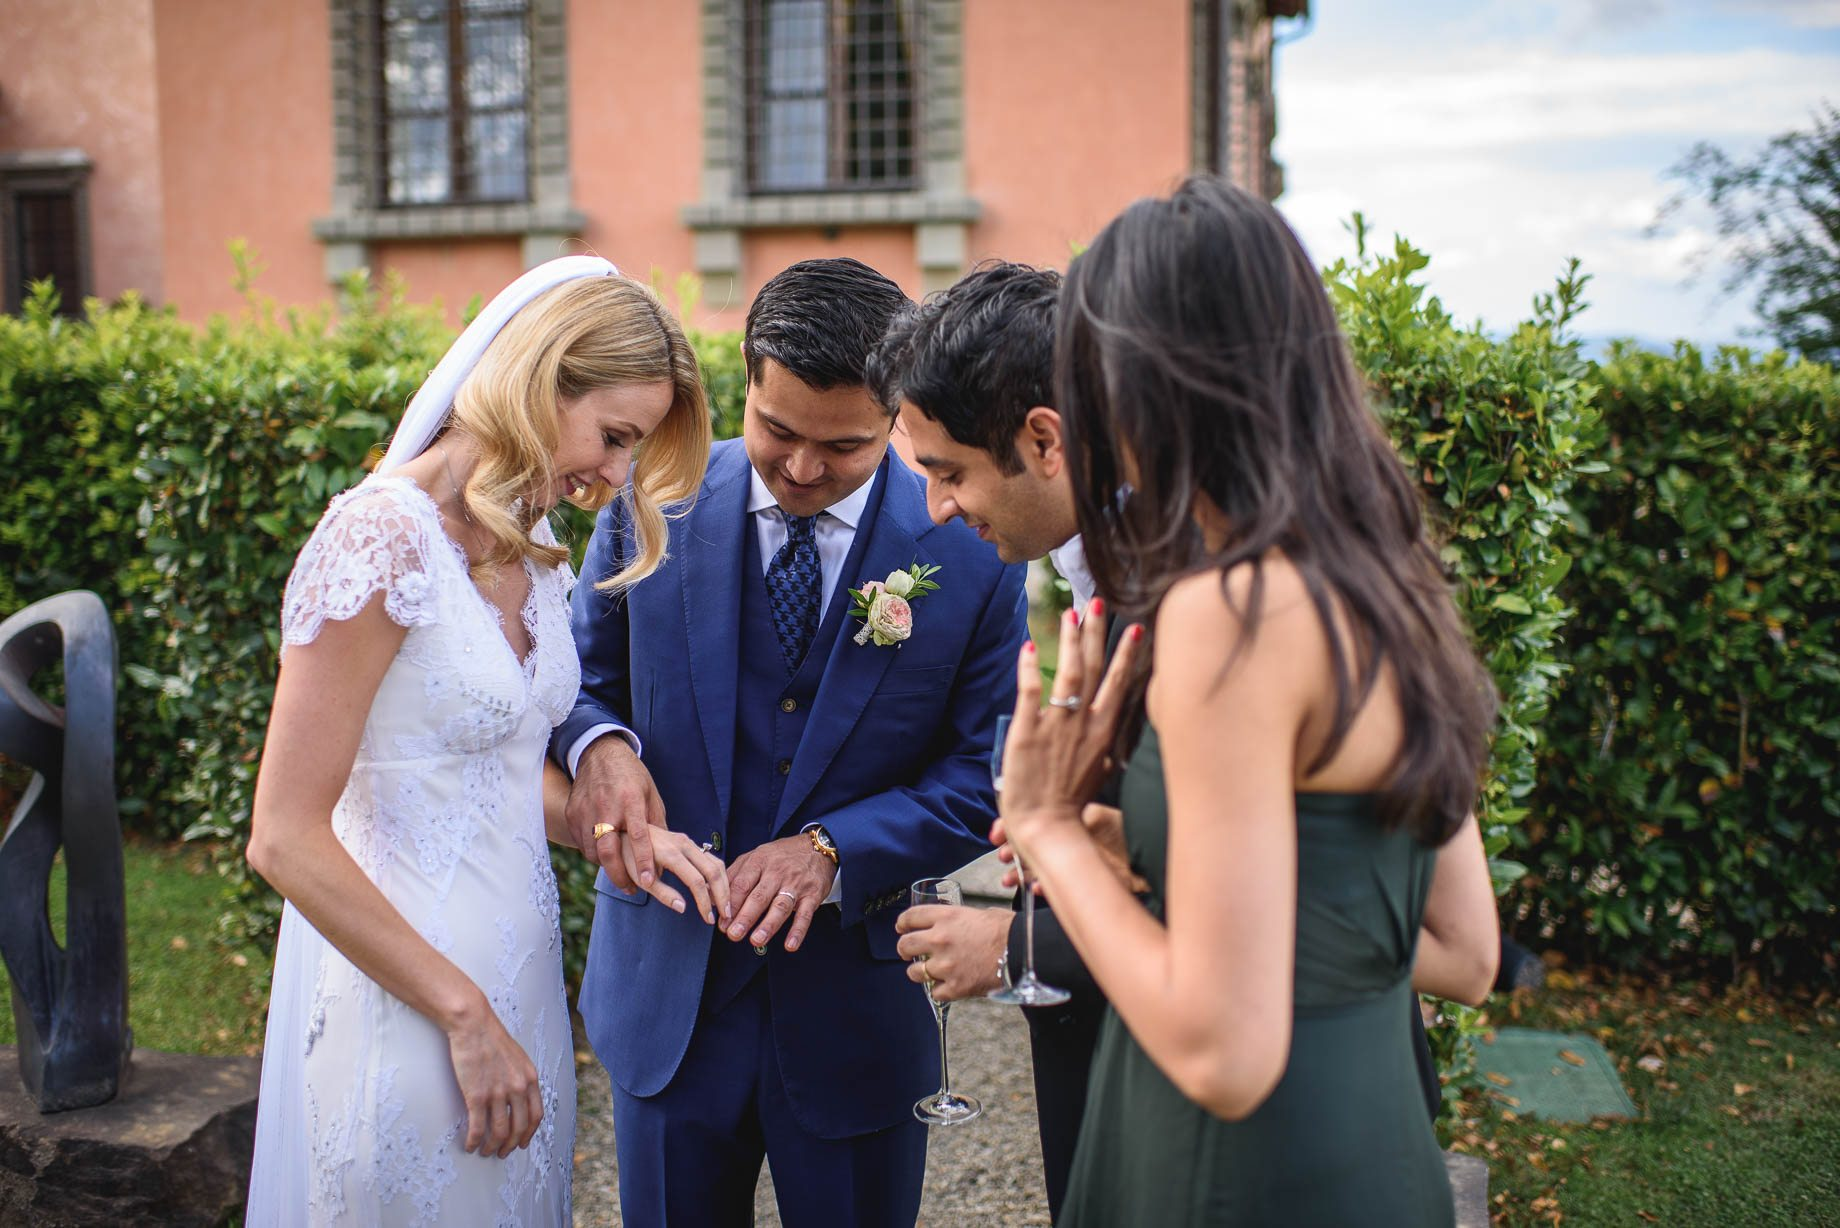 Tuscany wedding photography - Roisin and Moubin - Guy Collier Photography (134 of 251)